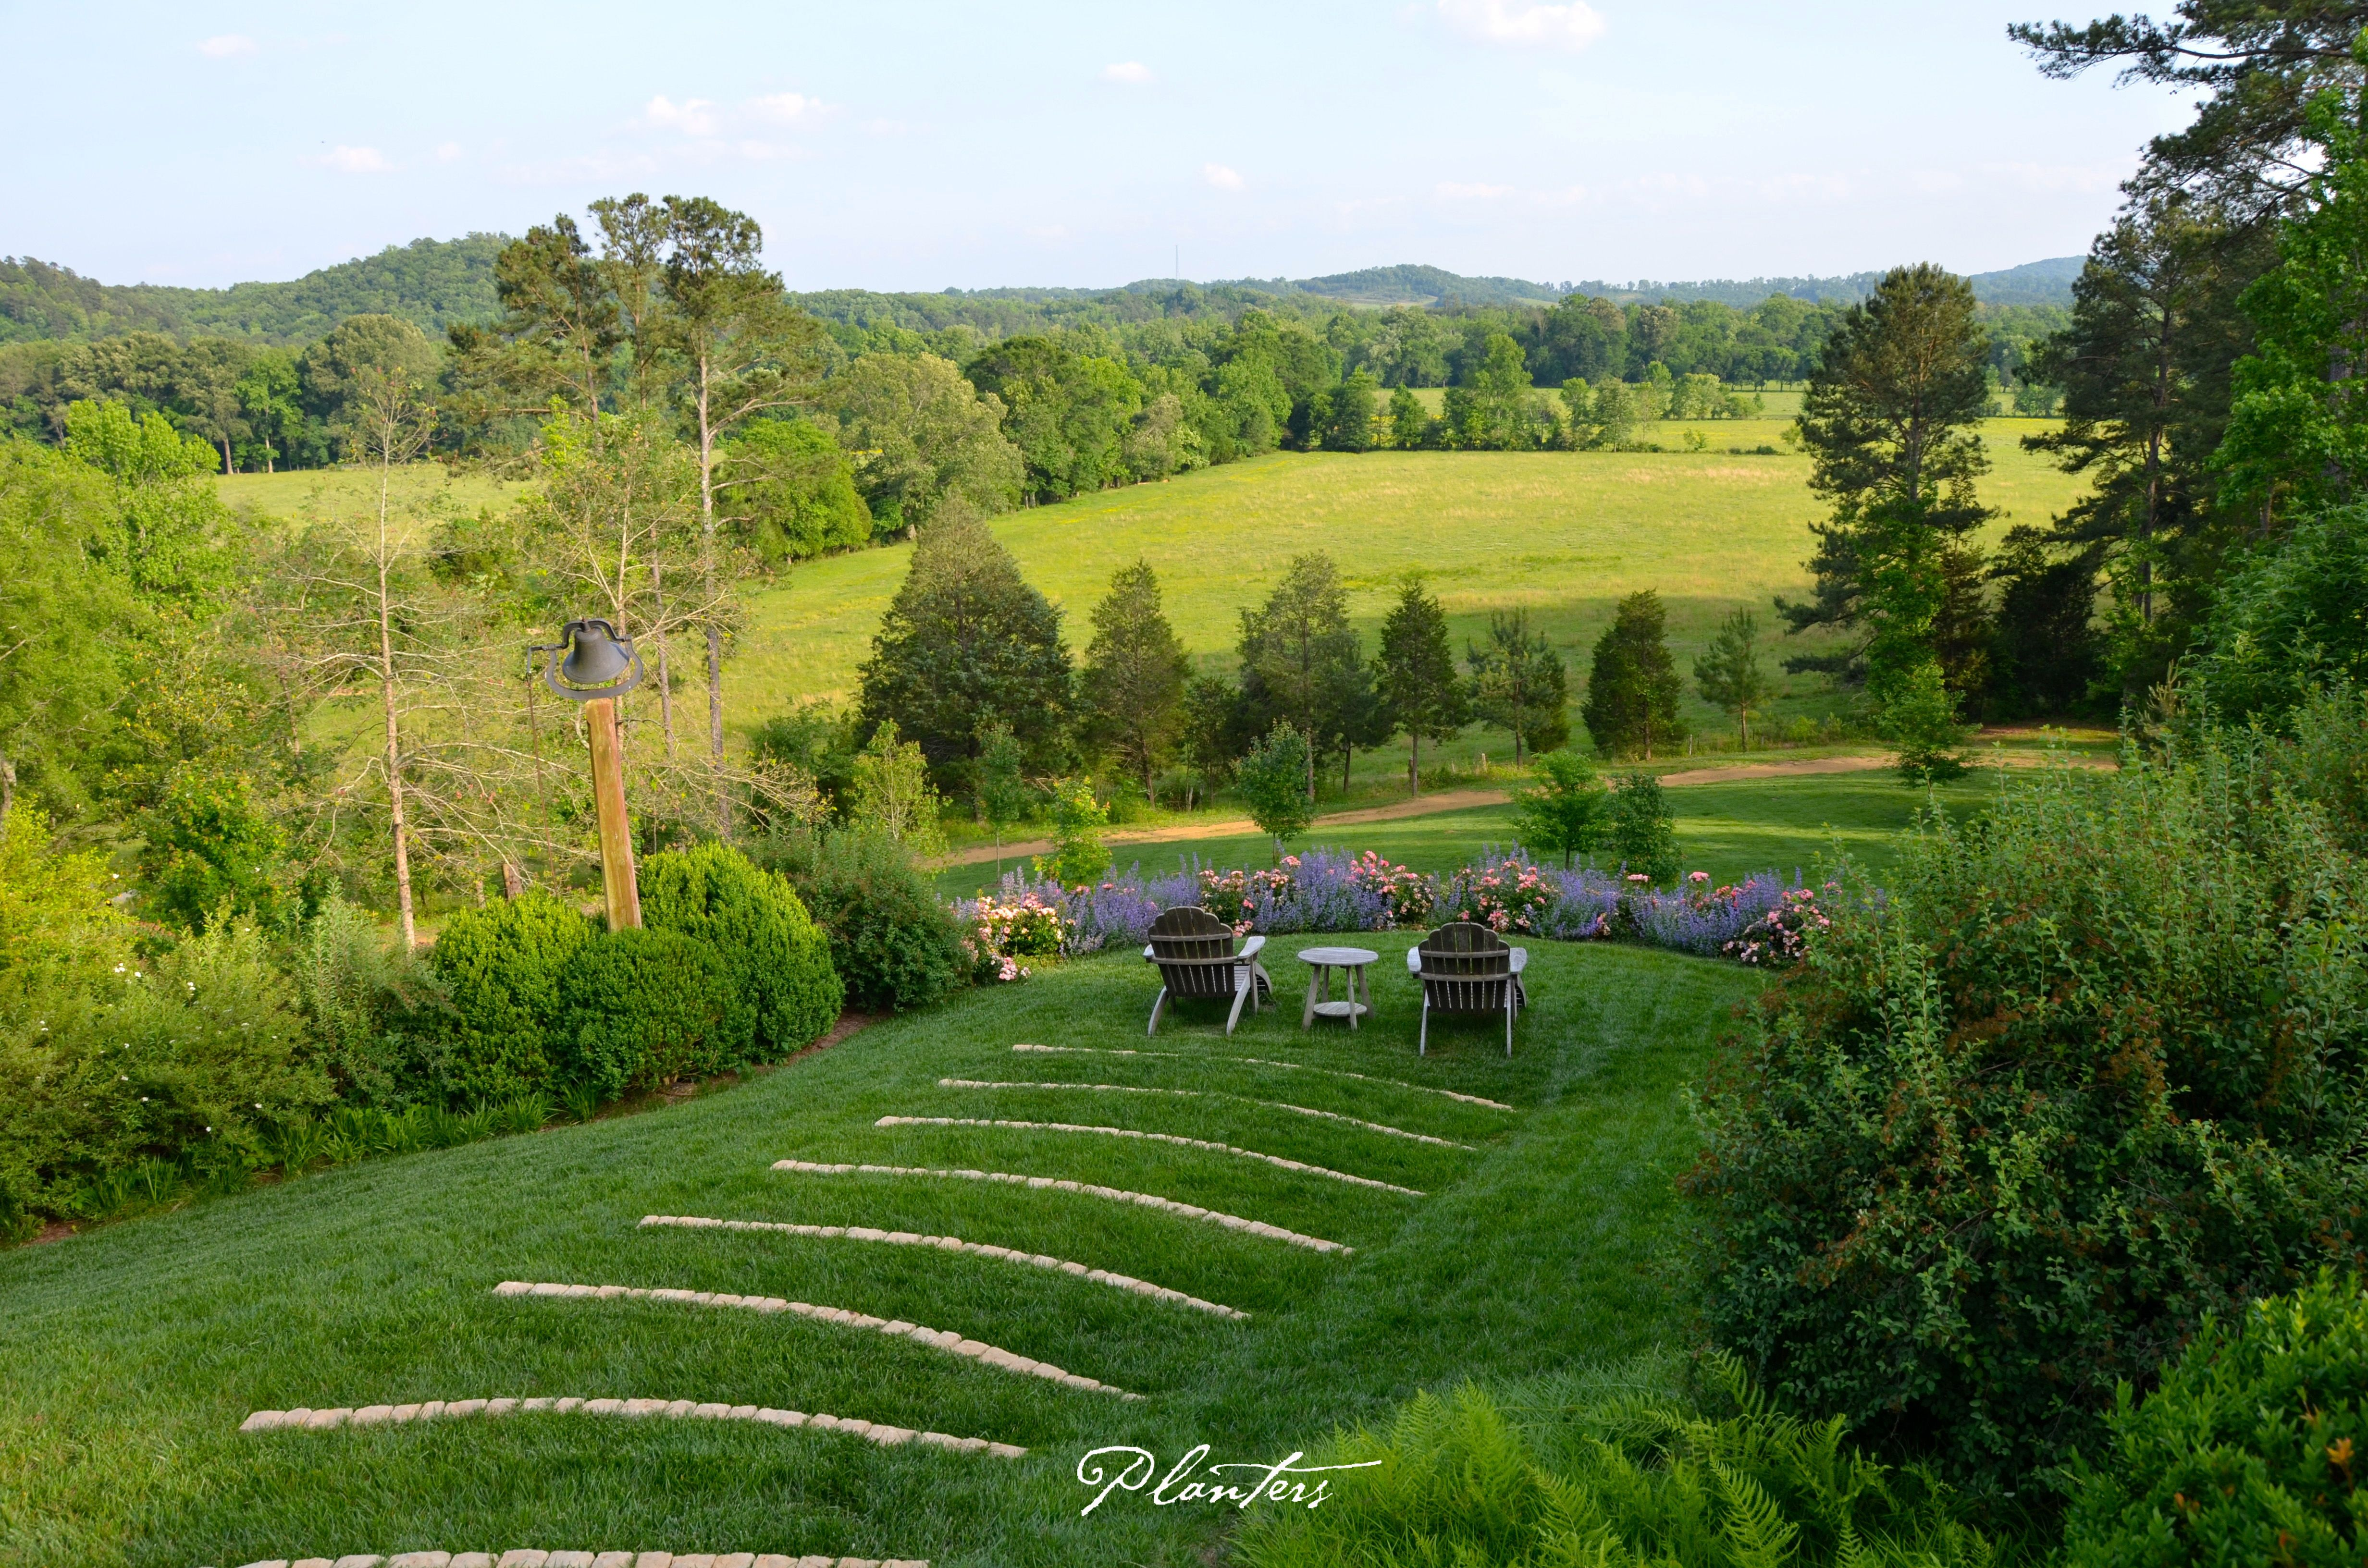 Stairs set in the lawn leading to an overlook with a garden and adirondack chairs. A Planters Design. Rome, GA